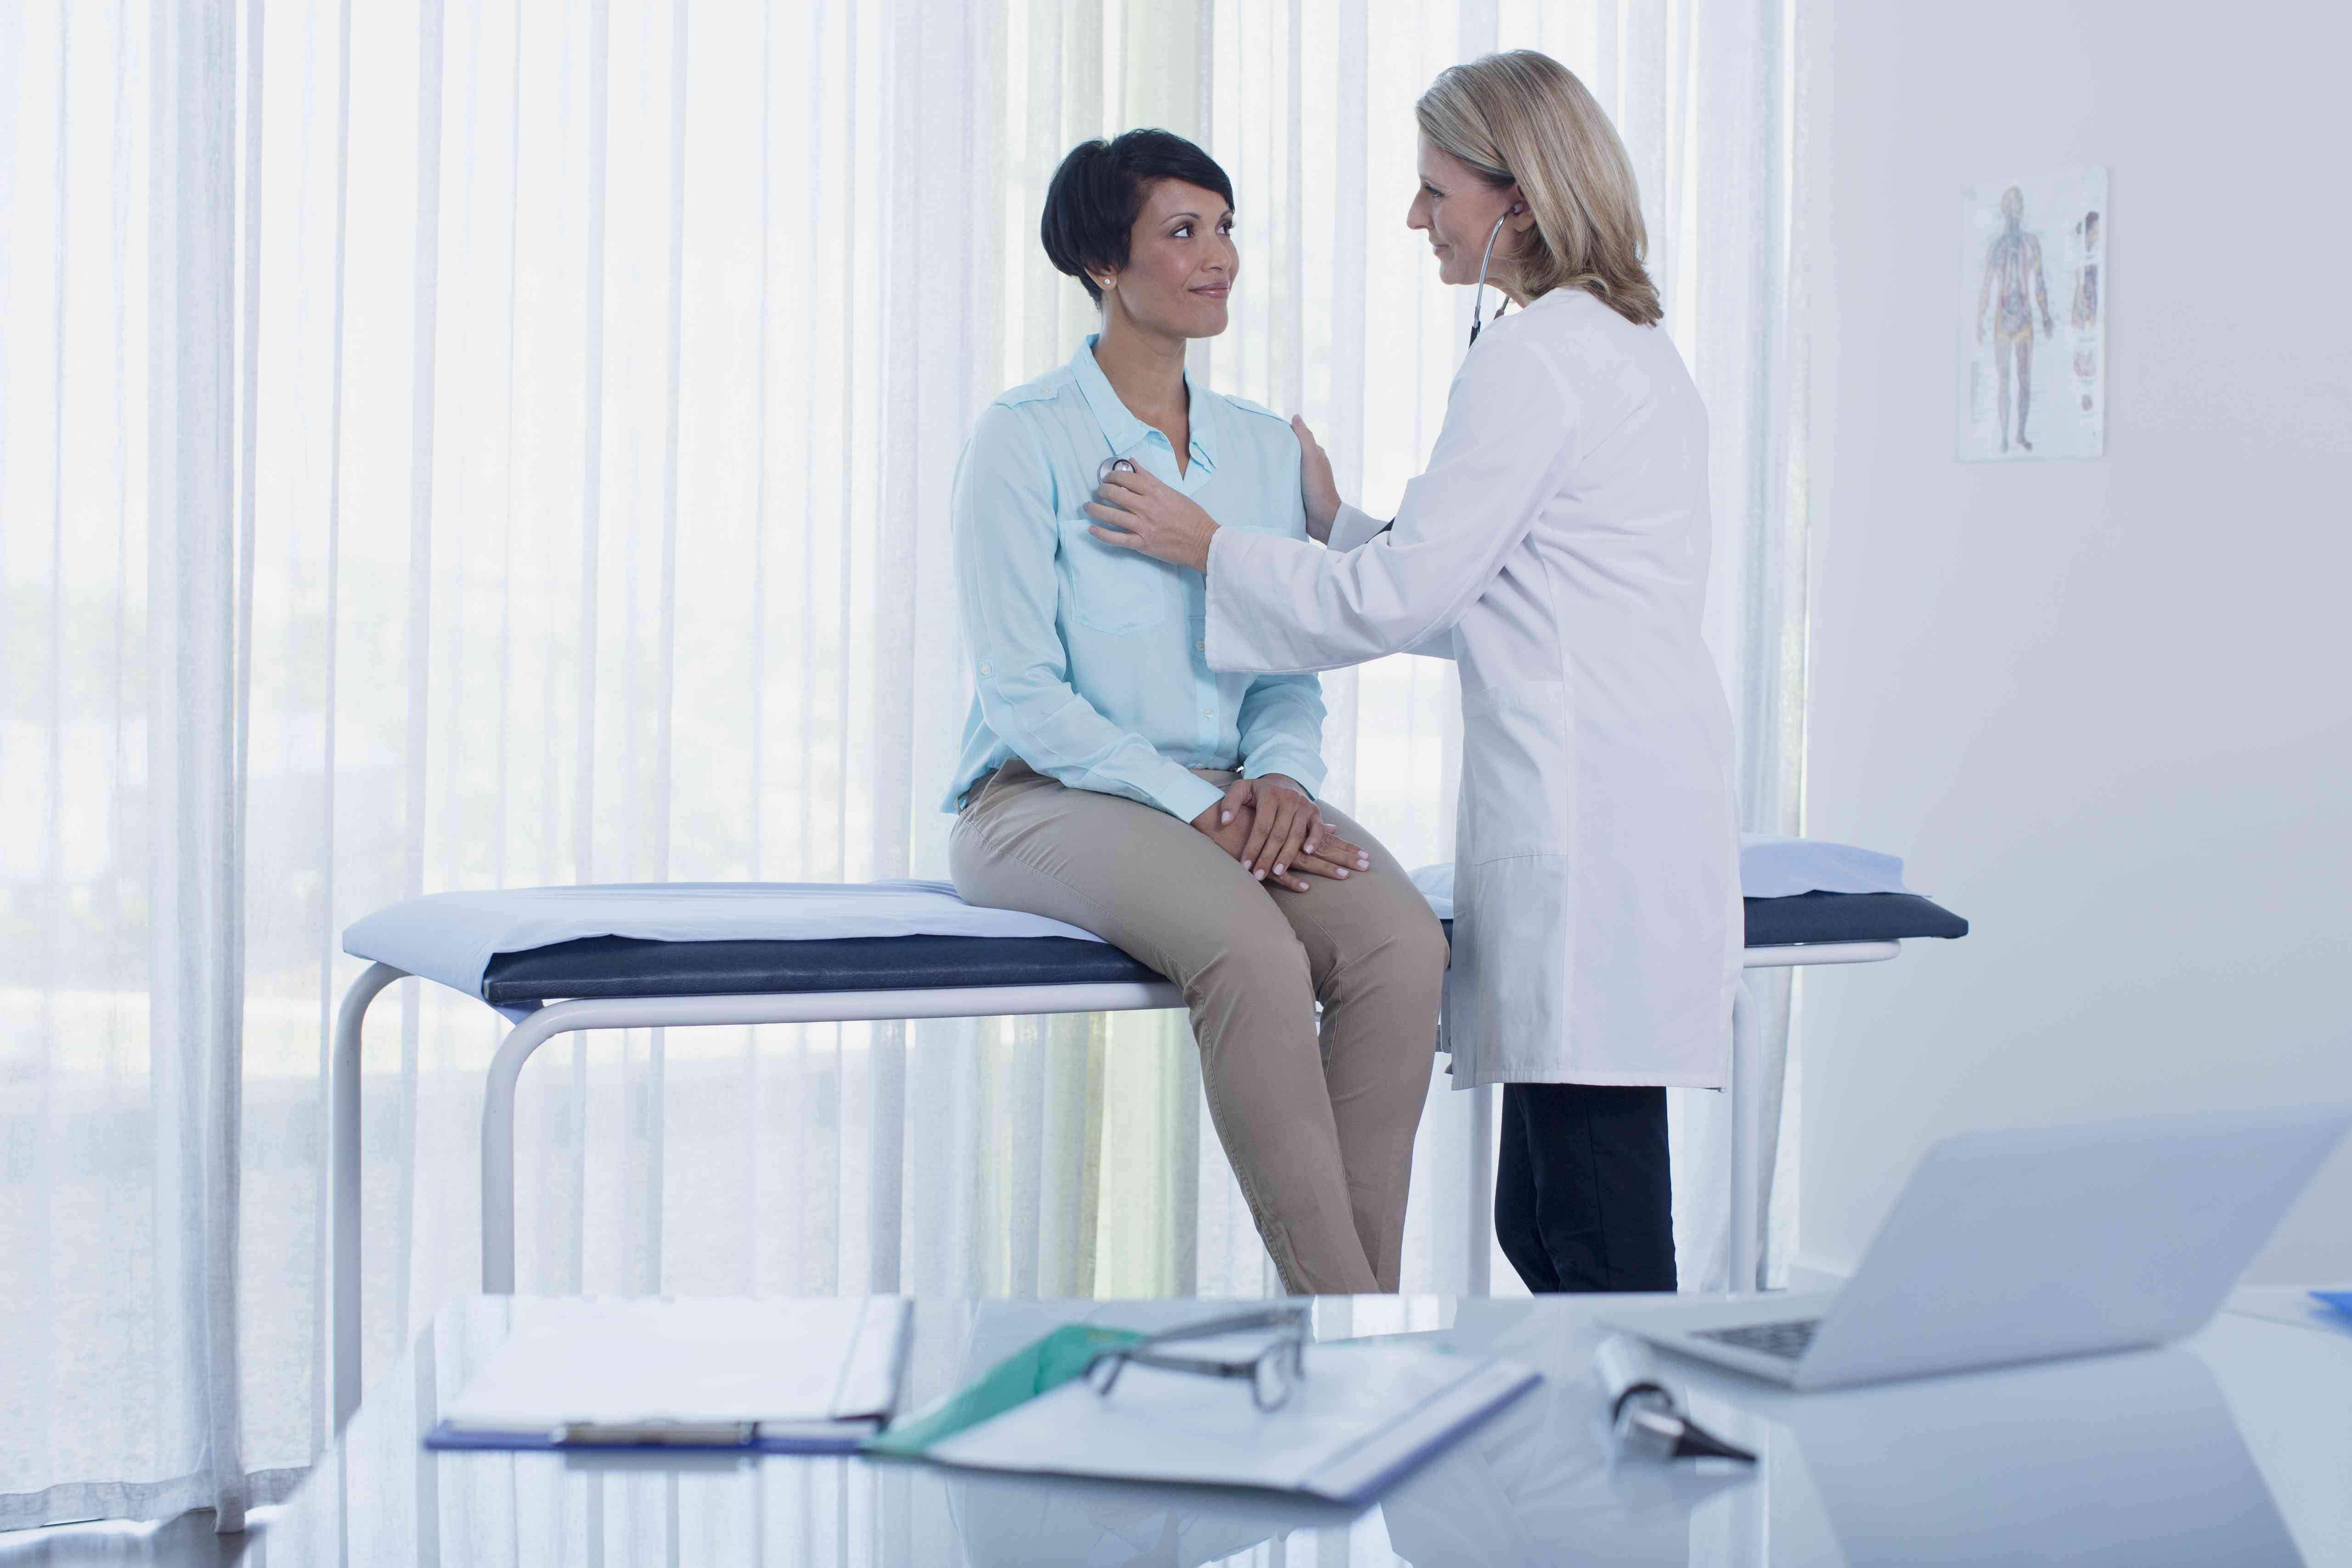 Female doctor examining her patient with stethoscope in office, desk with laptop in foreground